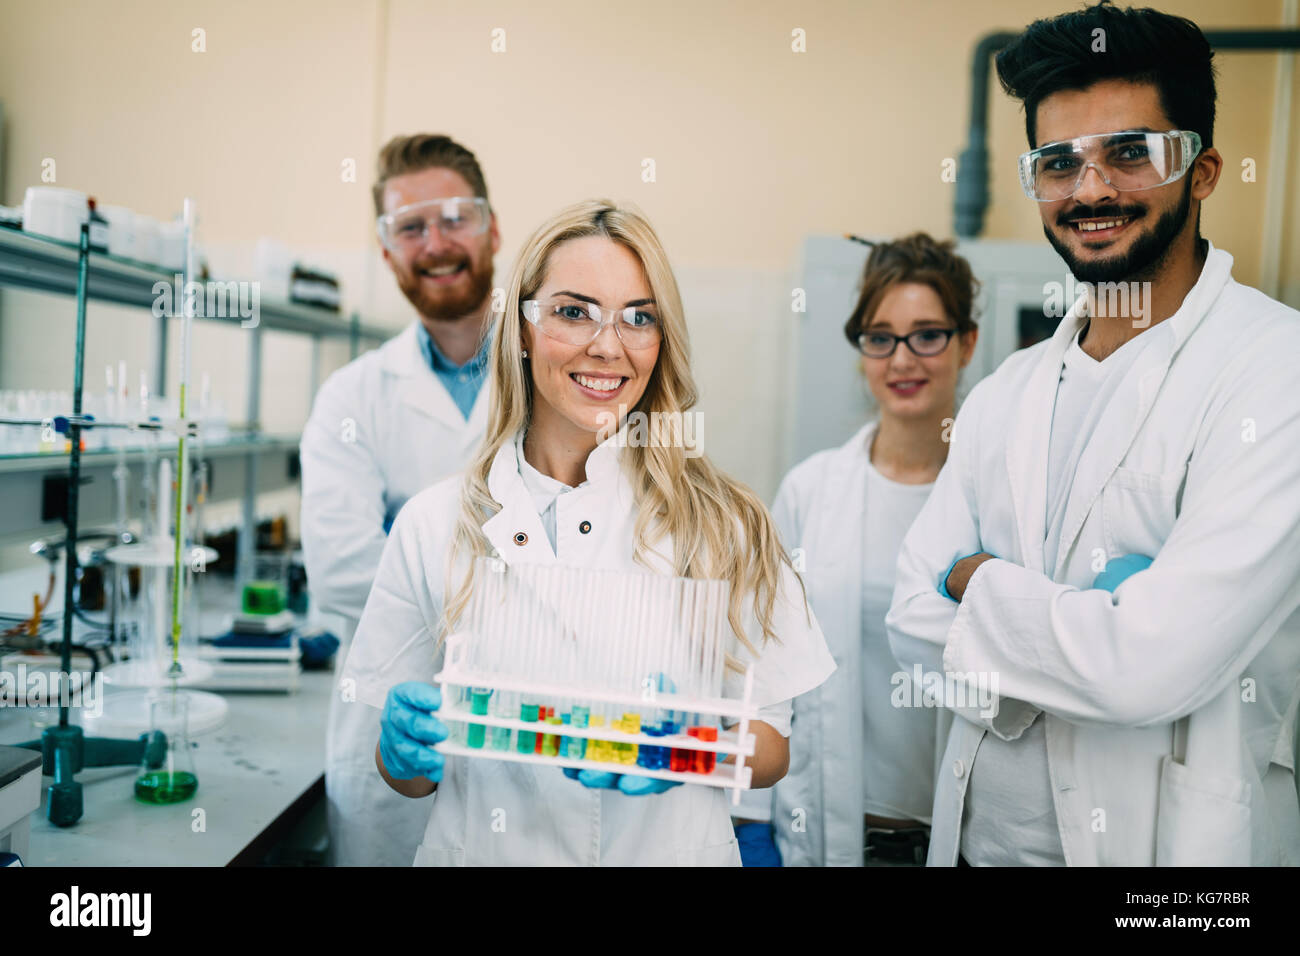 Group of young successful scientists posing for camera - Stock Image